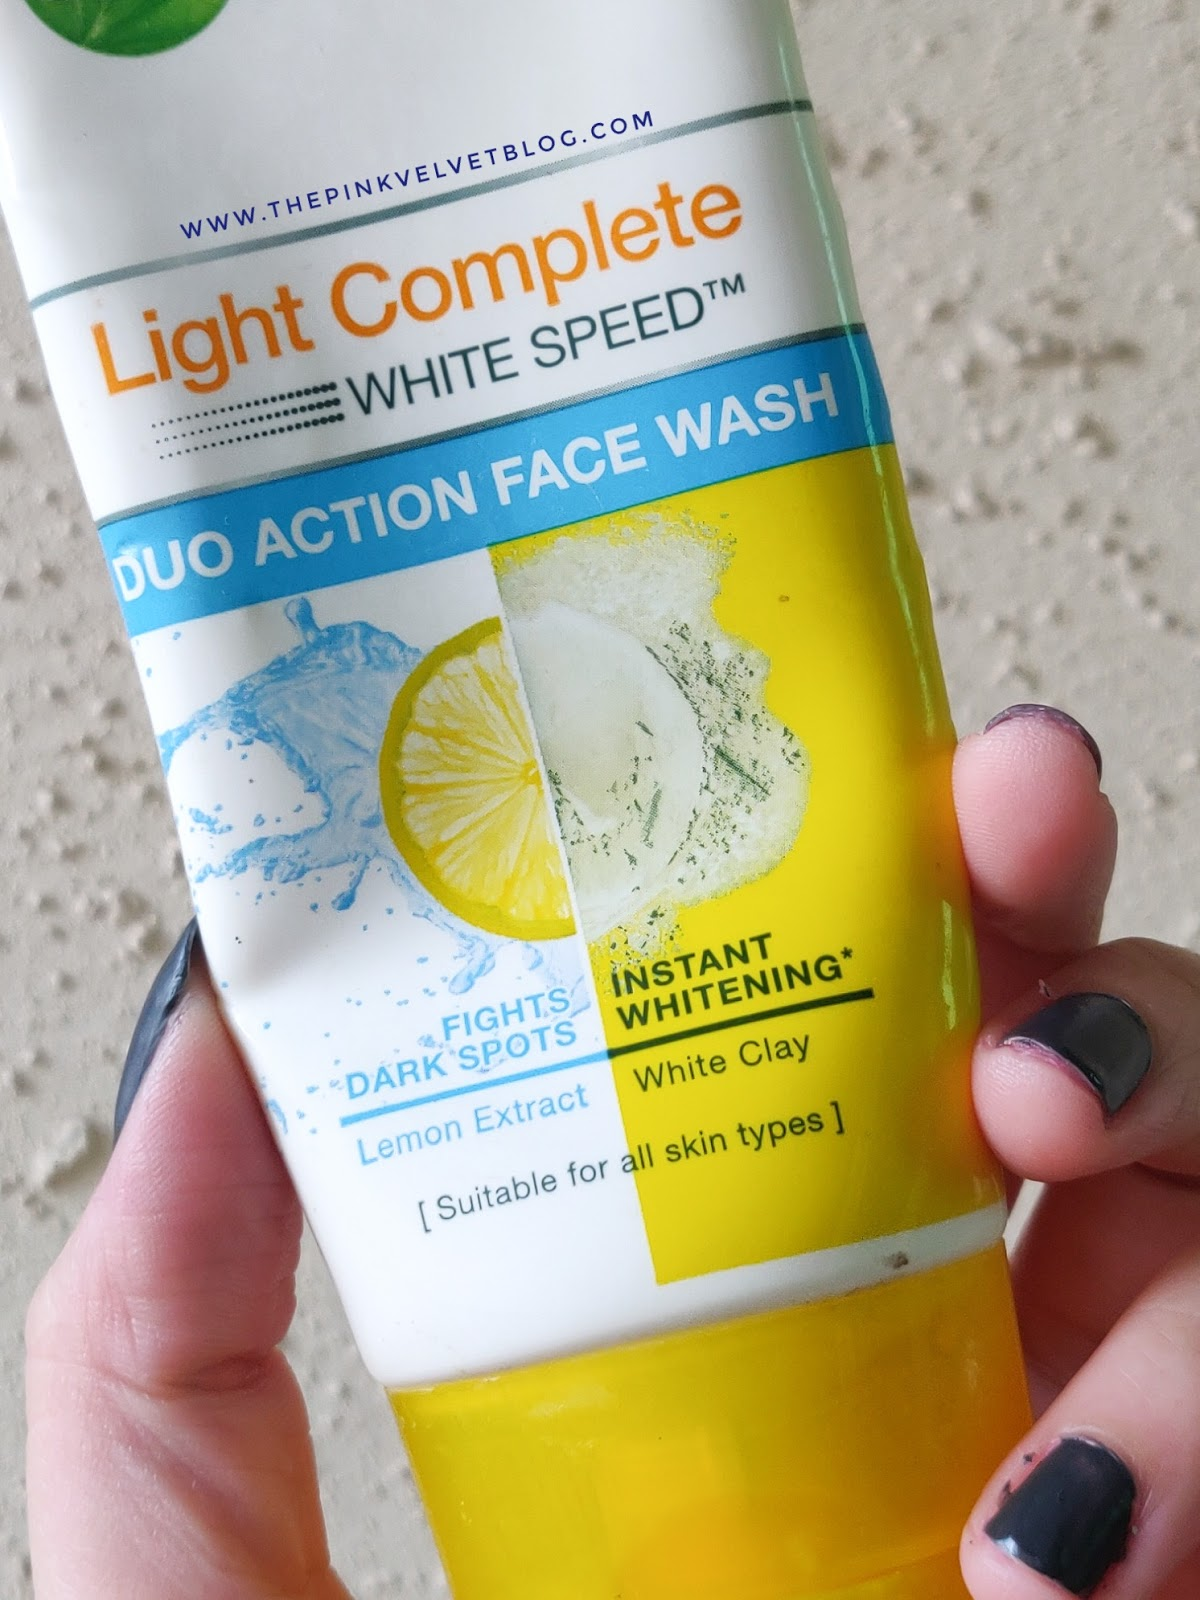 Garnier Light Complete Duo Action Face Wash - Review